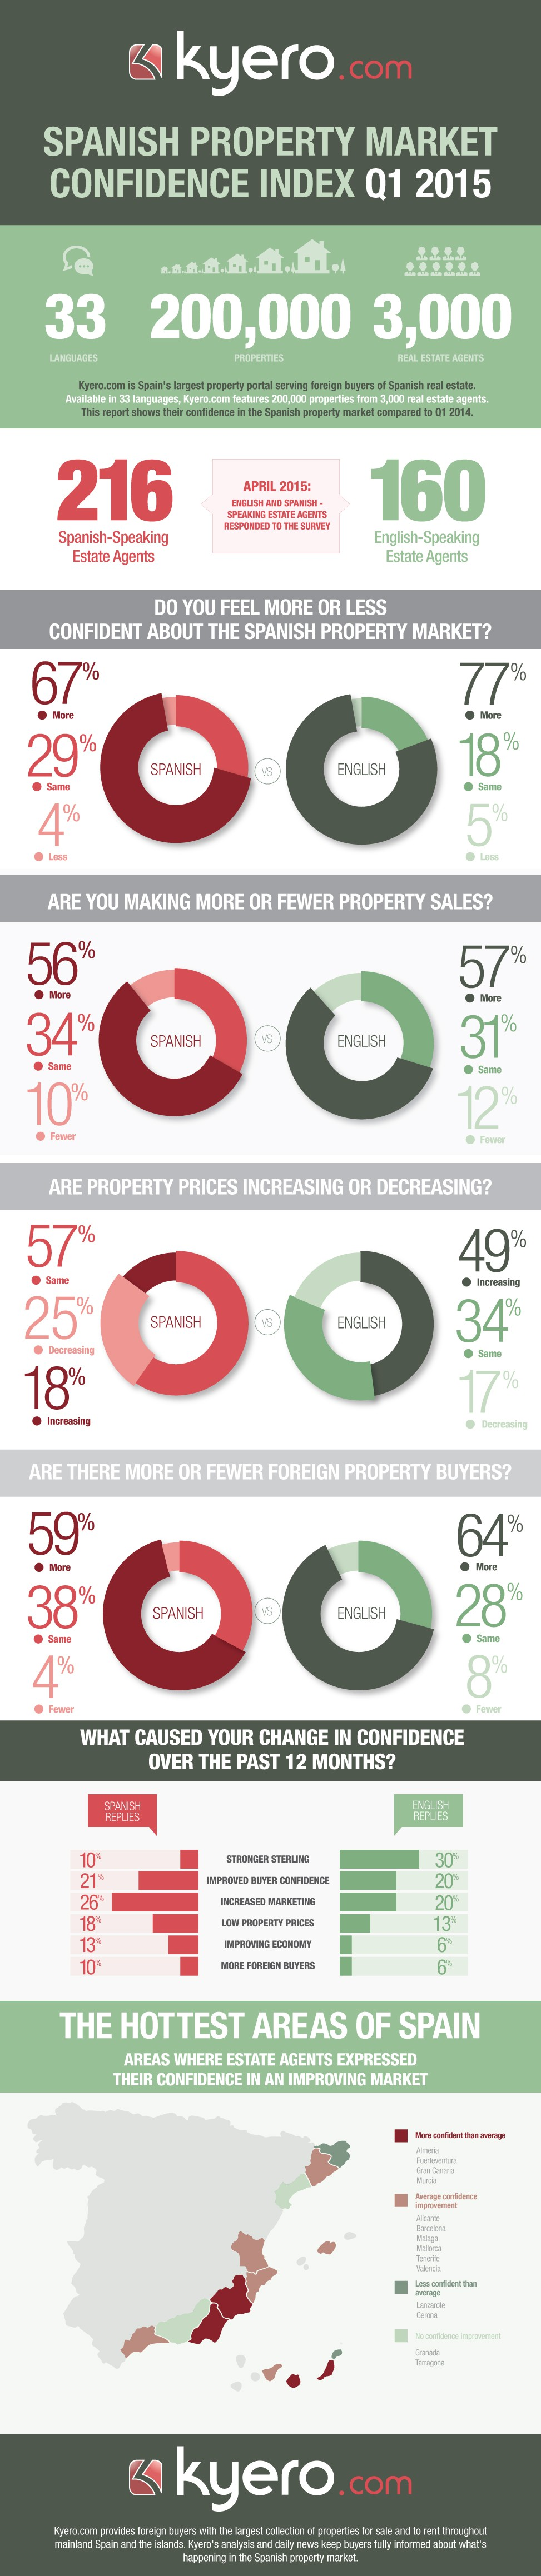 Clean & simple infographic design for Spanish real estate market confidence survey